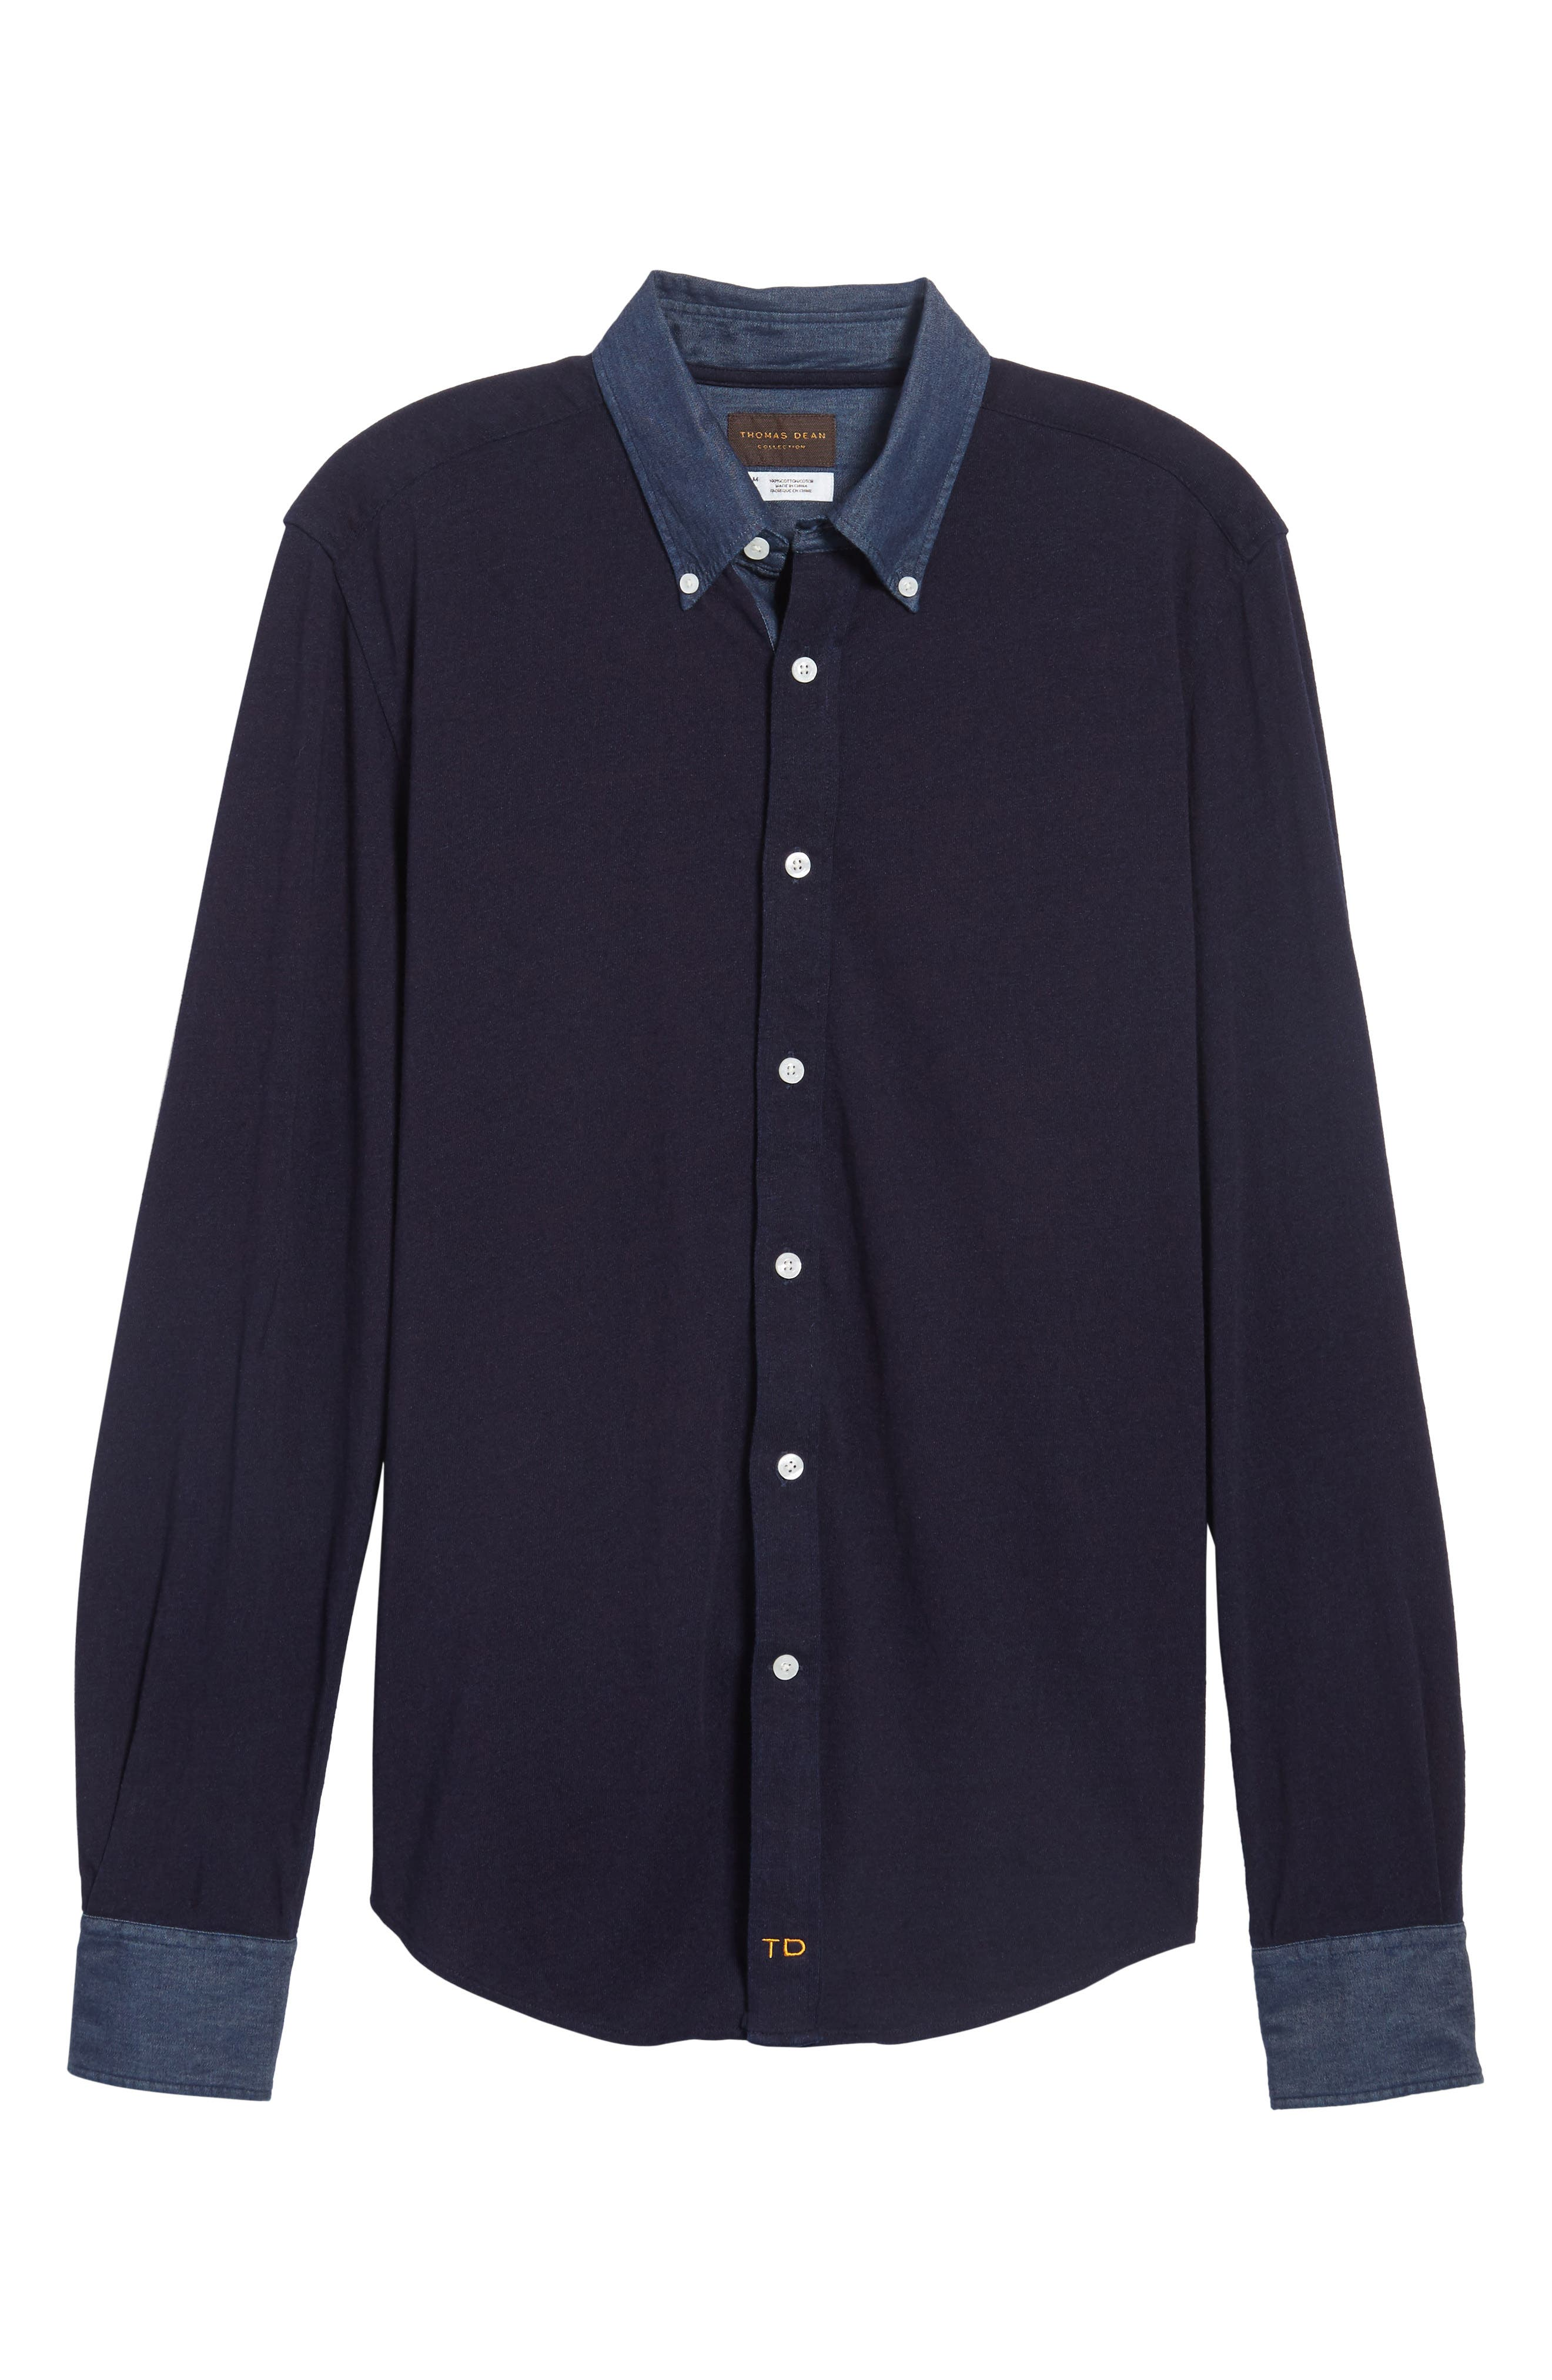 Regular Fit Chambray Trim Jersey Shirt,                             Alternate thumbnail 6, color,                             Indigo